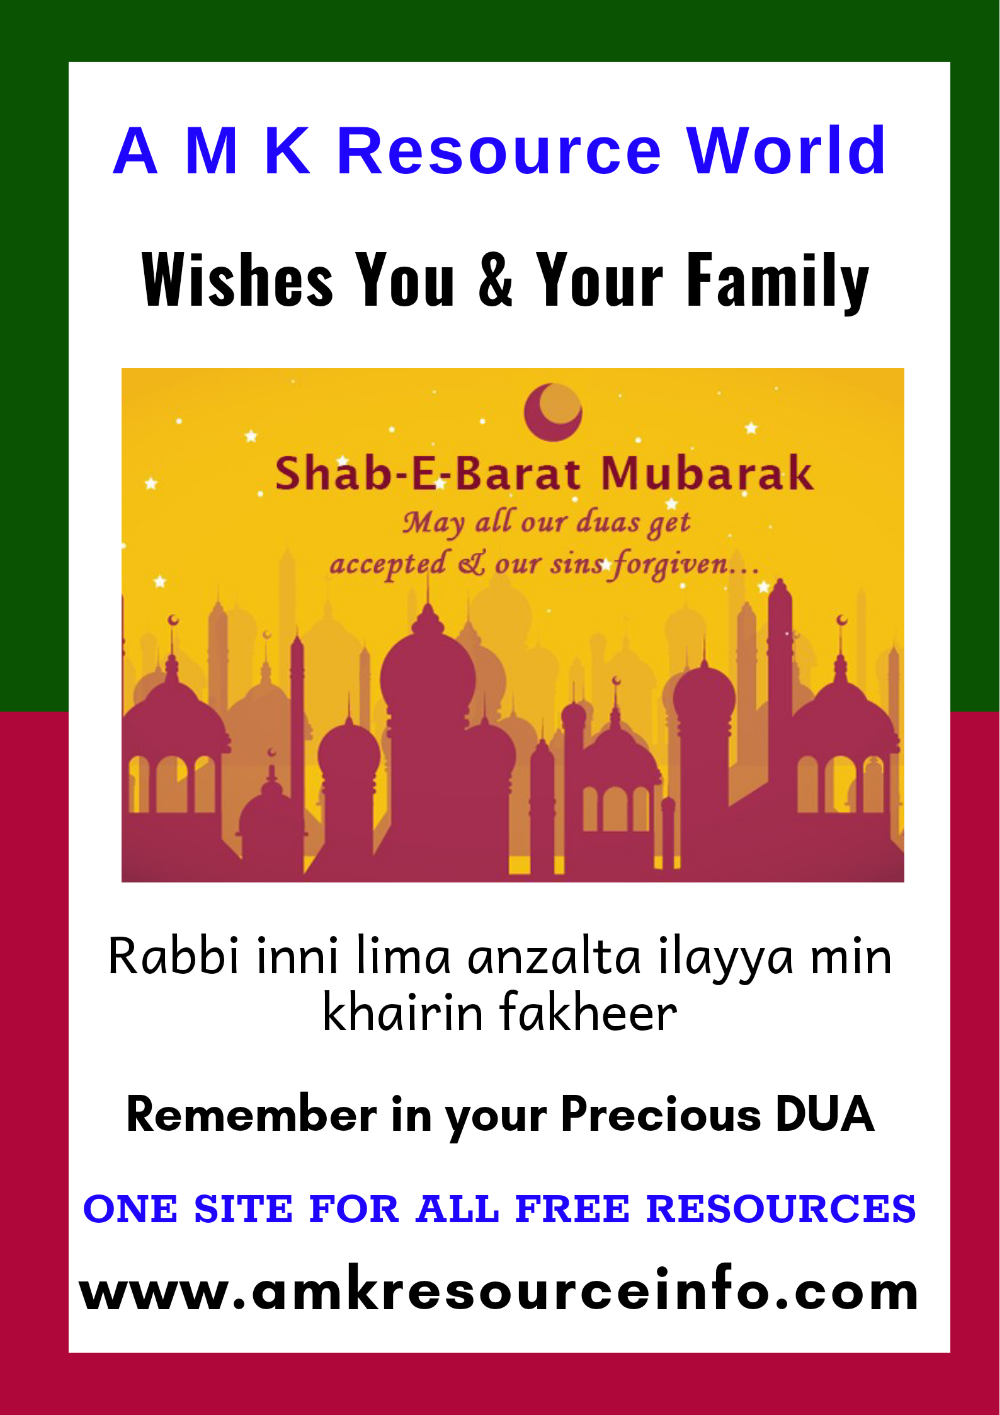 festival - AMK Resource World Wishes You & Your Family Shab - E - Barat Mubarak May all our duas get accepted [ our sins forgiven . . . Rabbi inni lima anzalta ilayya min khairin fakheer Remember in your Precious DUA ONE SITE FOR ALL FREE RESOURCES www . amkresourceinfo . com - ShareChat